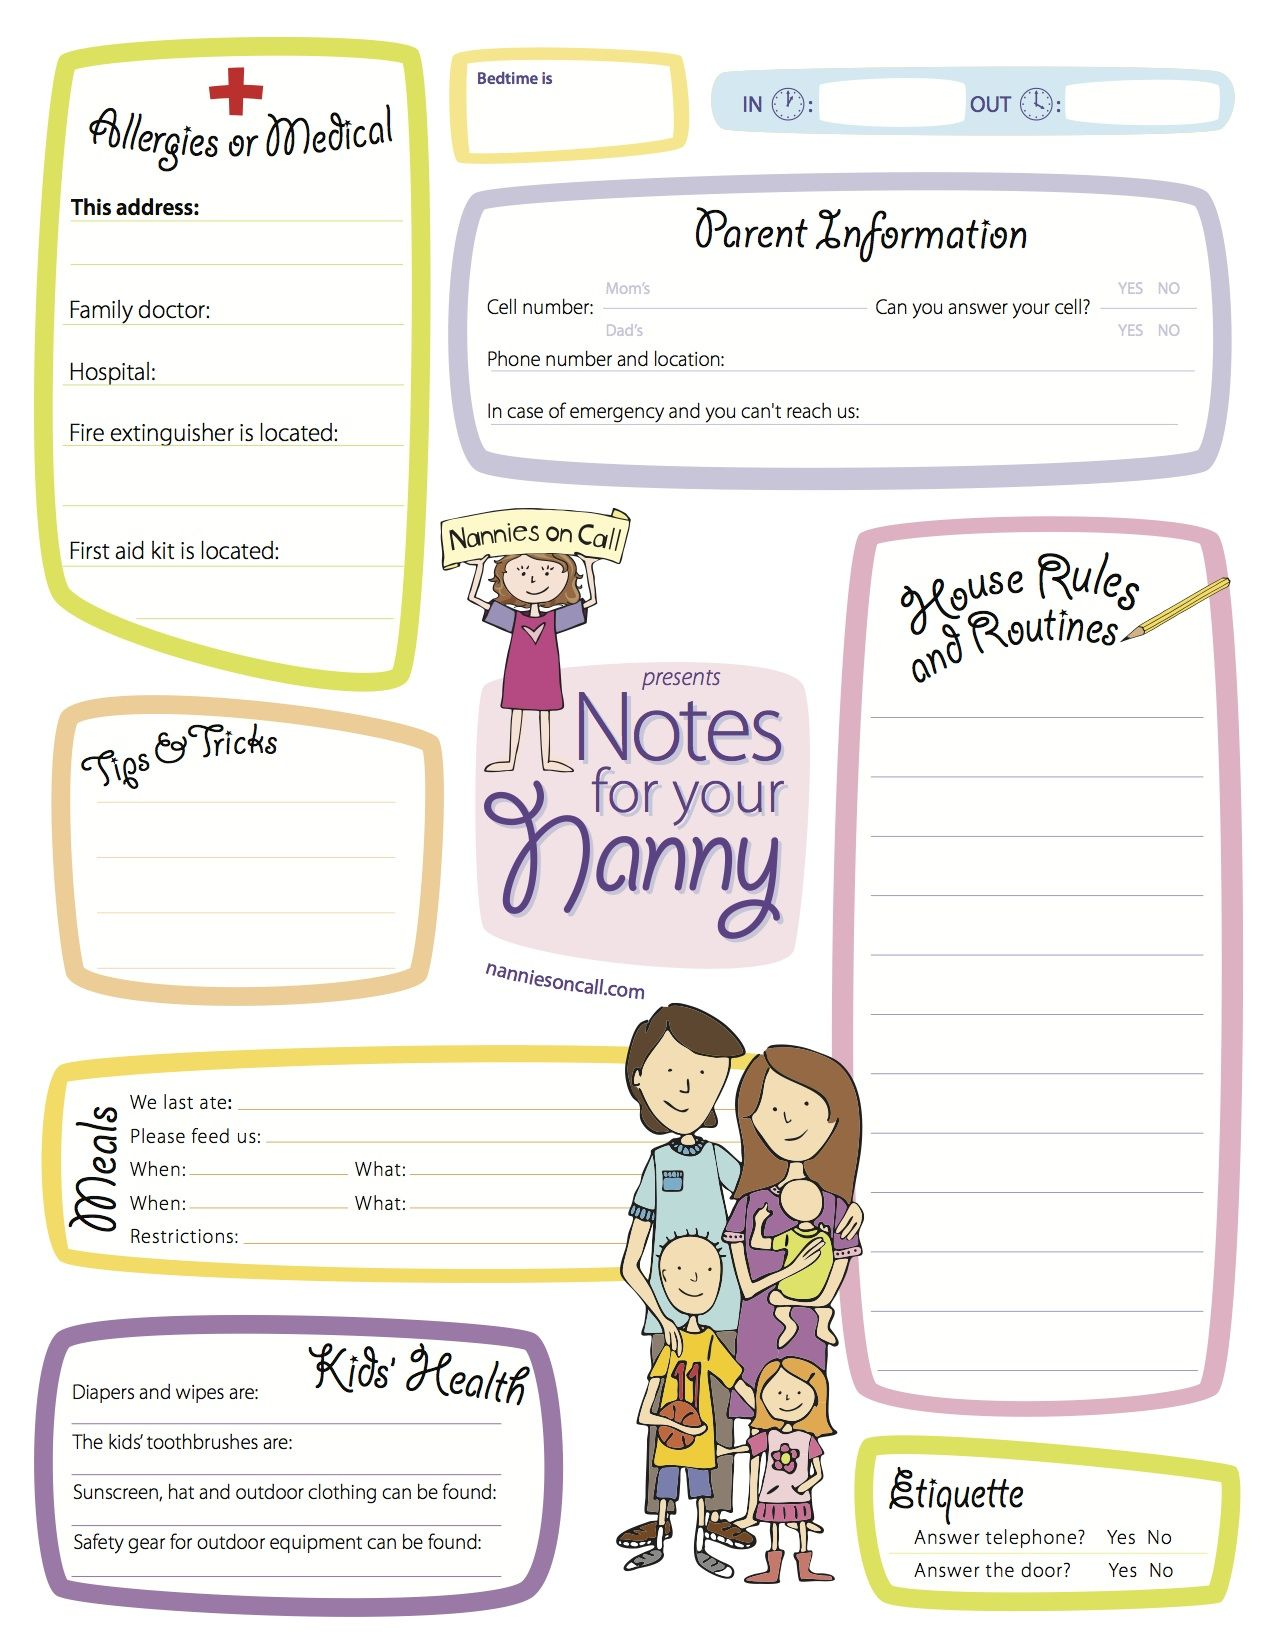 Notes For Your Nanny Is A Great Way To Let Your Nanny Or Babysitter Know Important Information